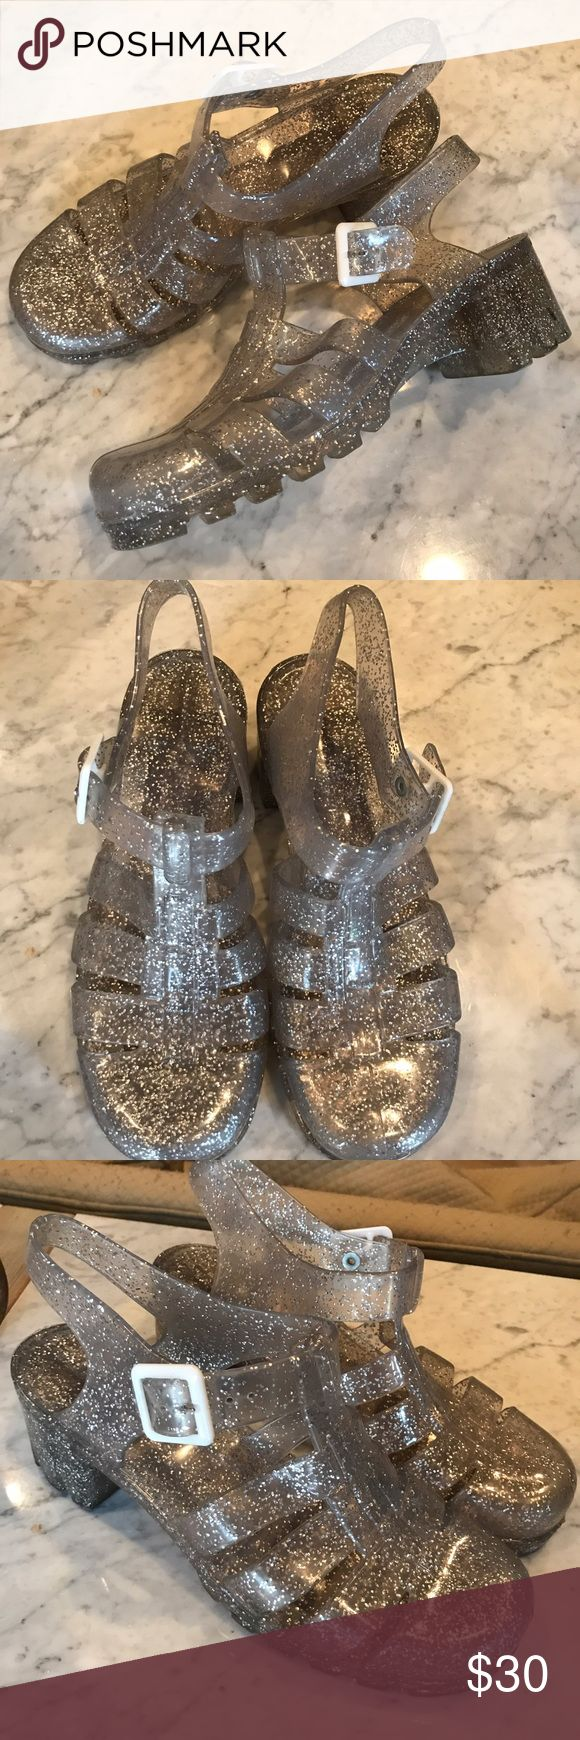 Juju jelly heeled sandal clear with silver glitter Great condition worn a couple times JuJu Shoes Sandals